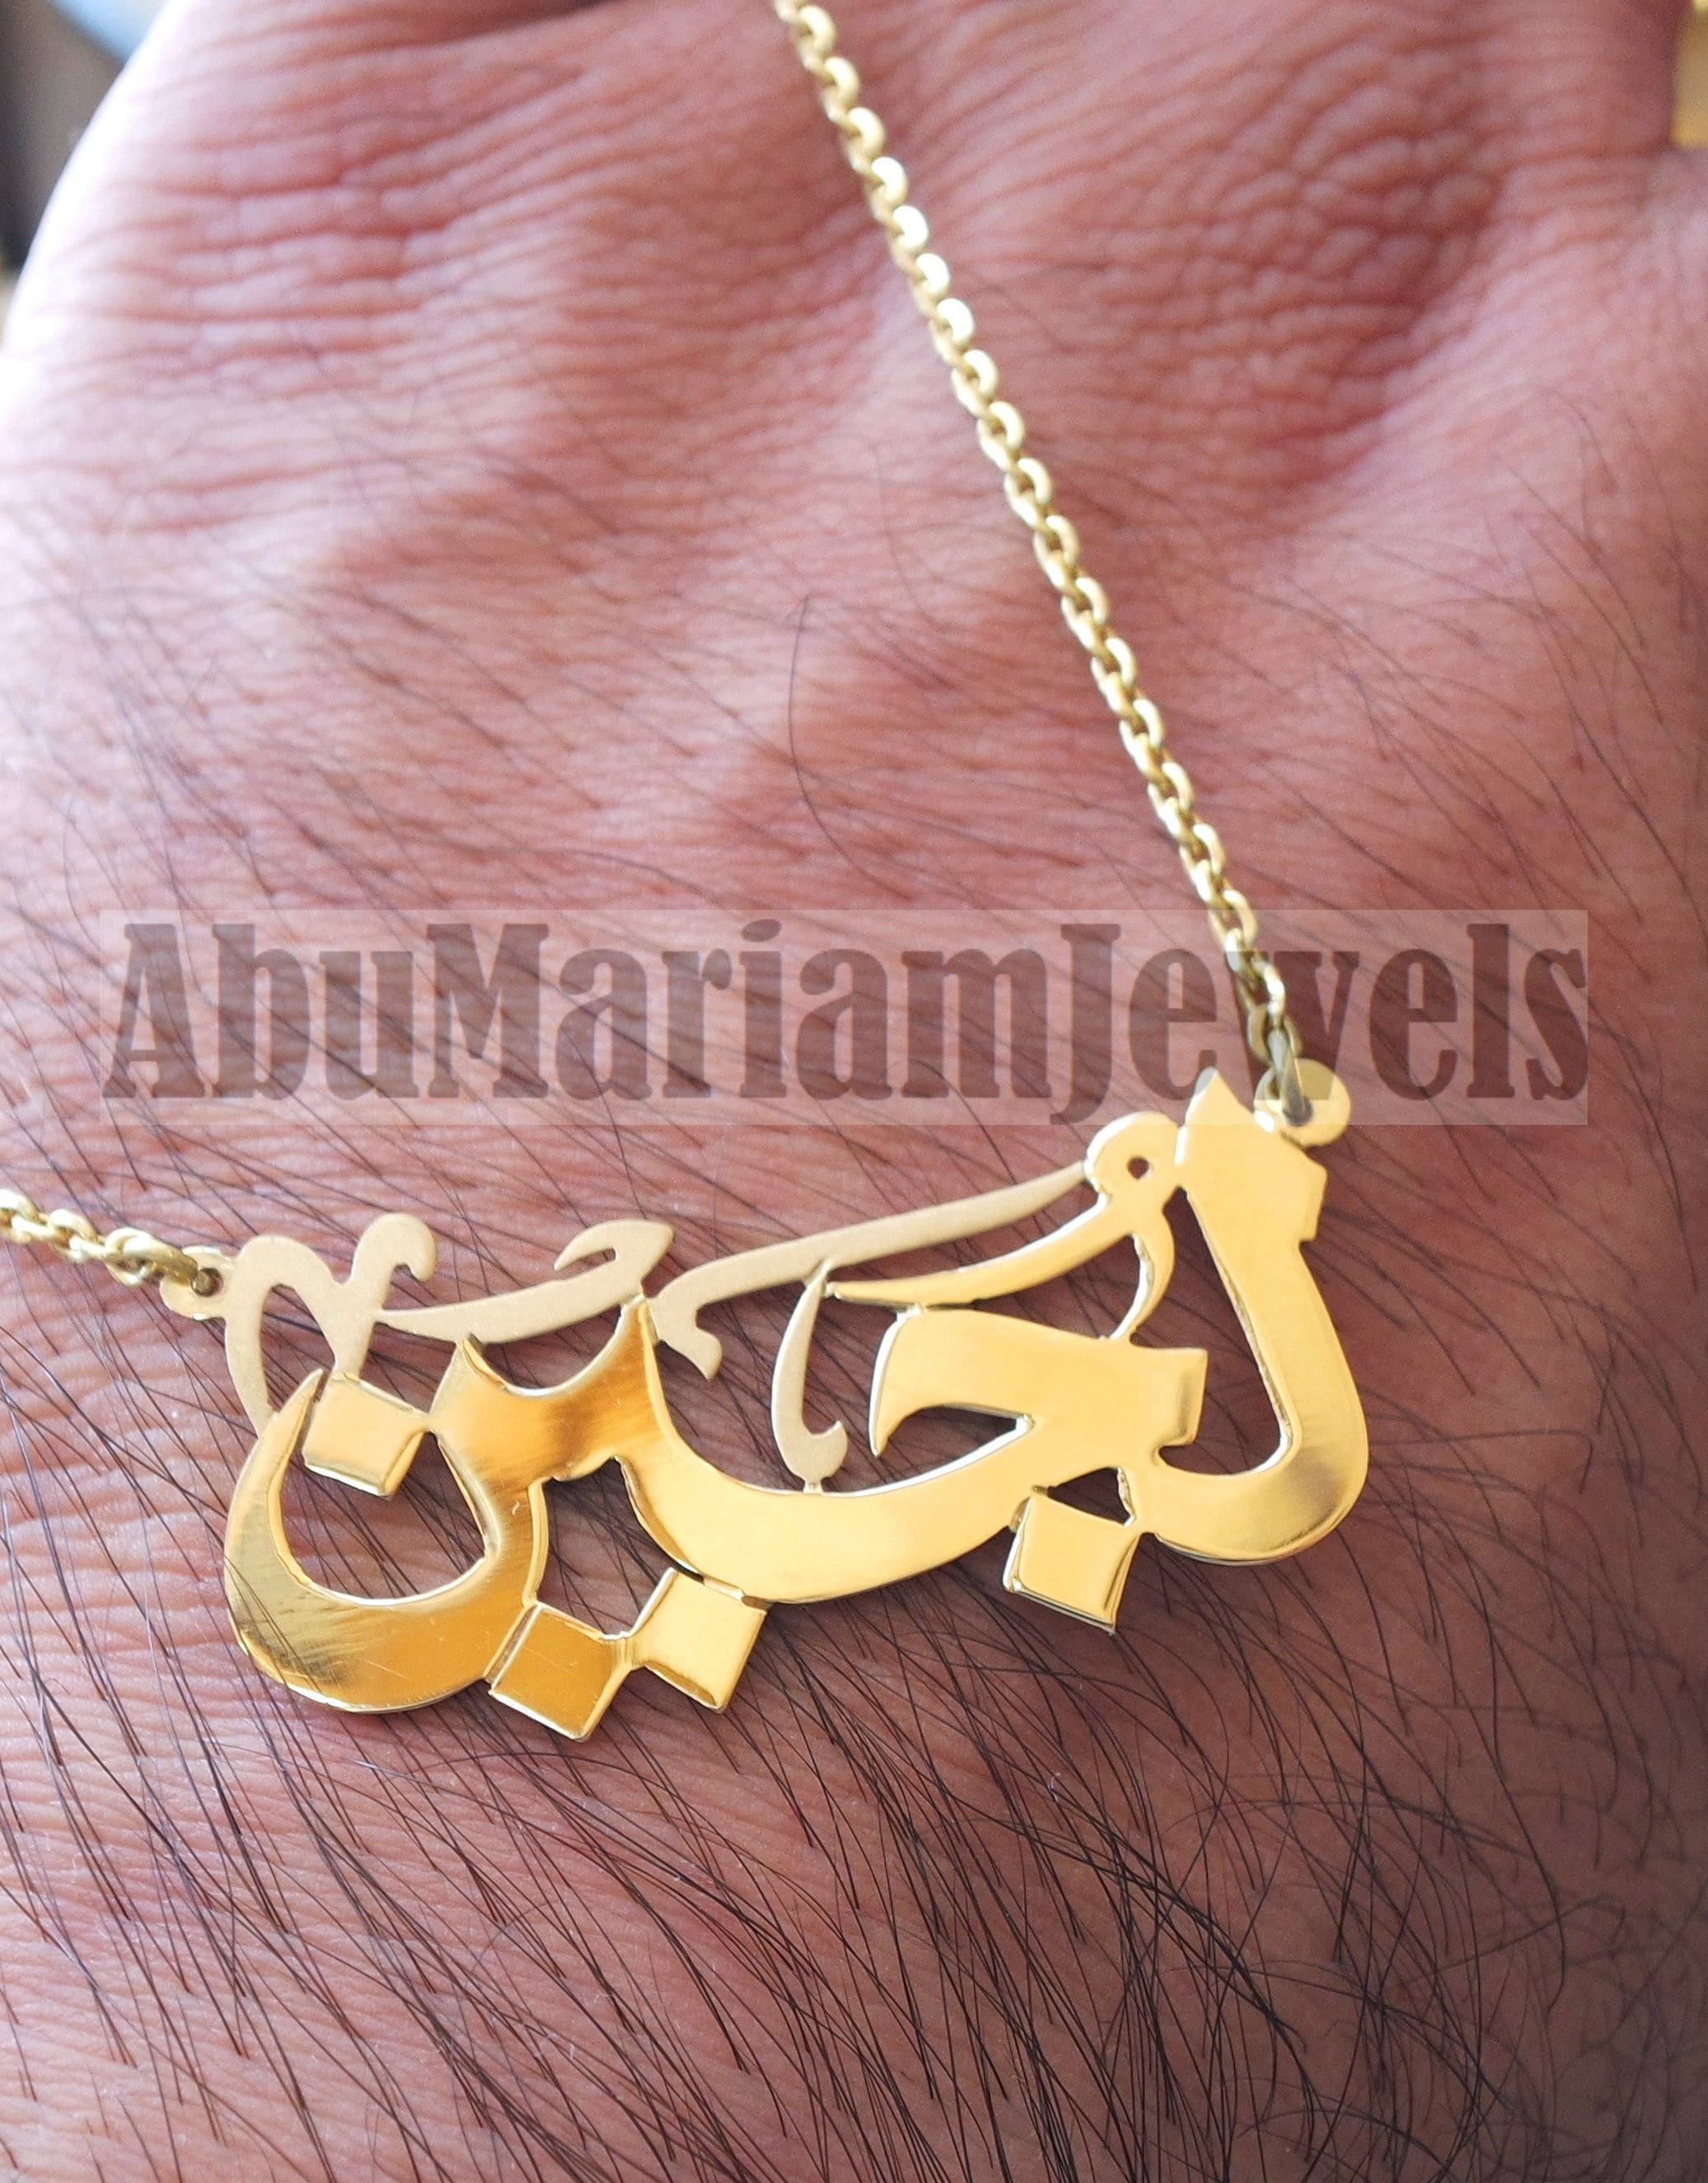 personalized customized 1 name 18 k gold arabic calligraphy pendant with chain standard , pear , rectangular or any shape fine jewelry N1009